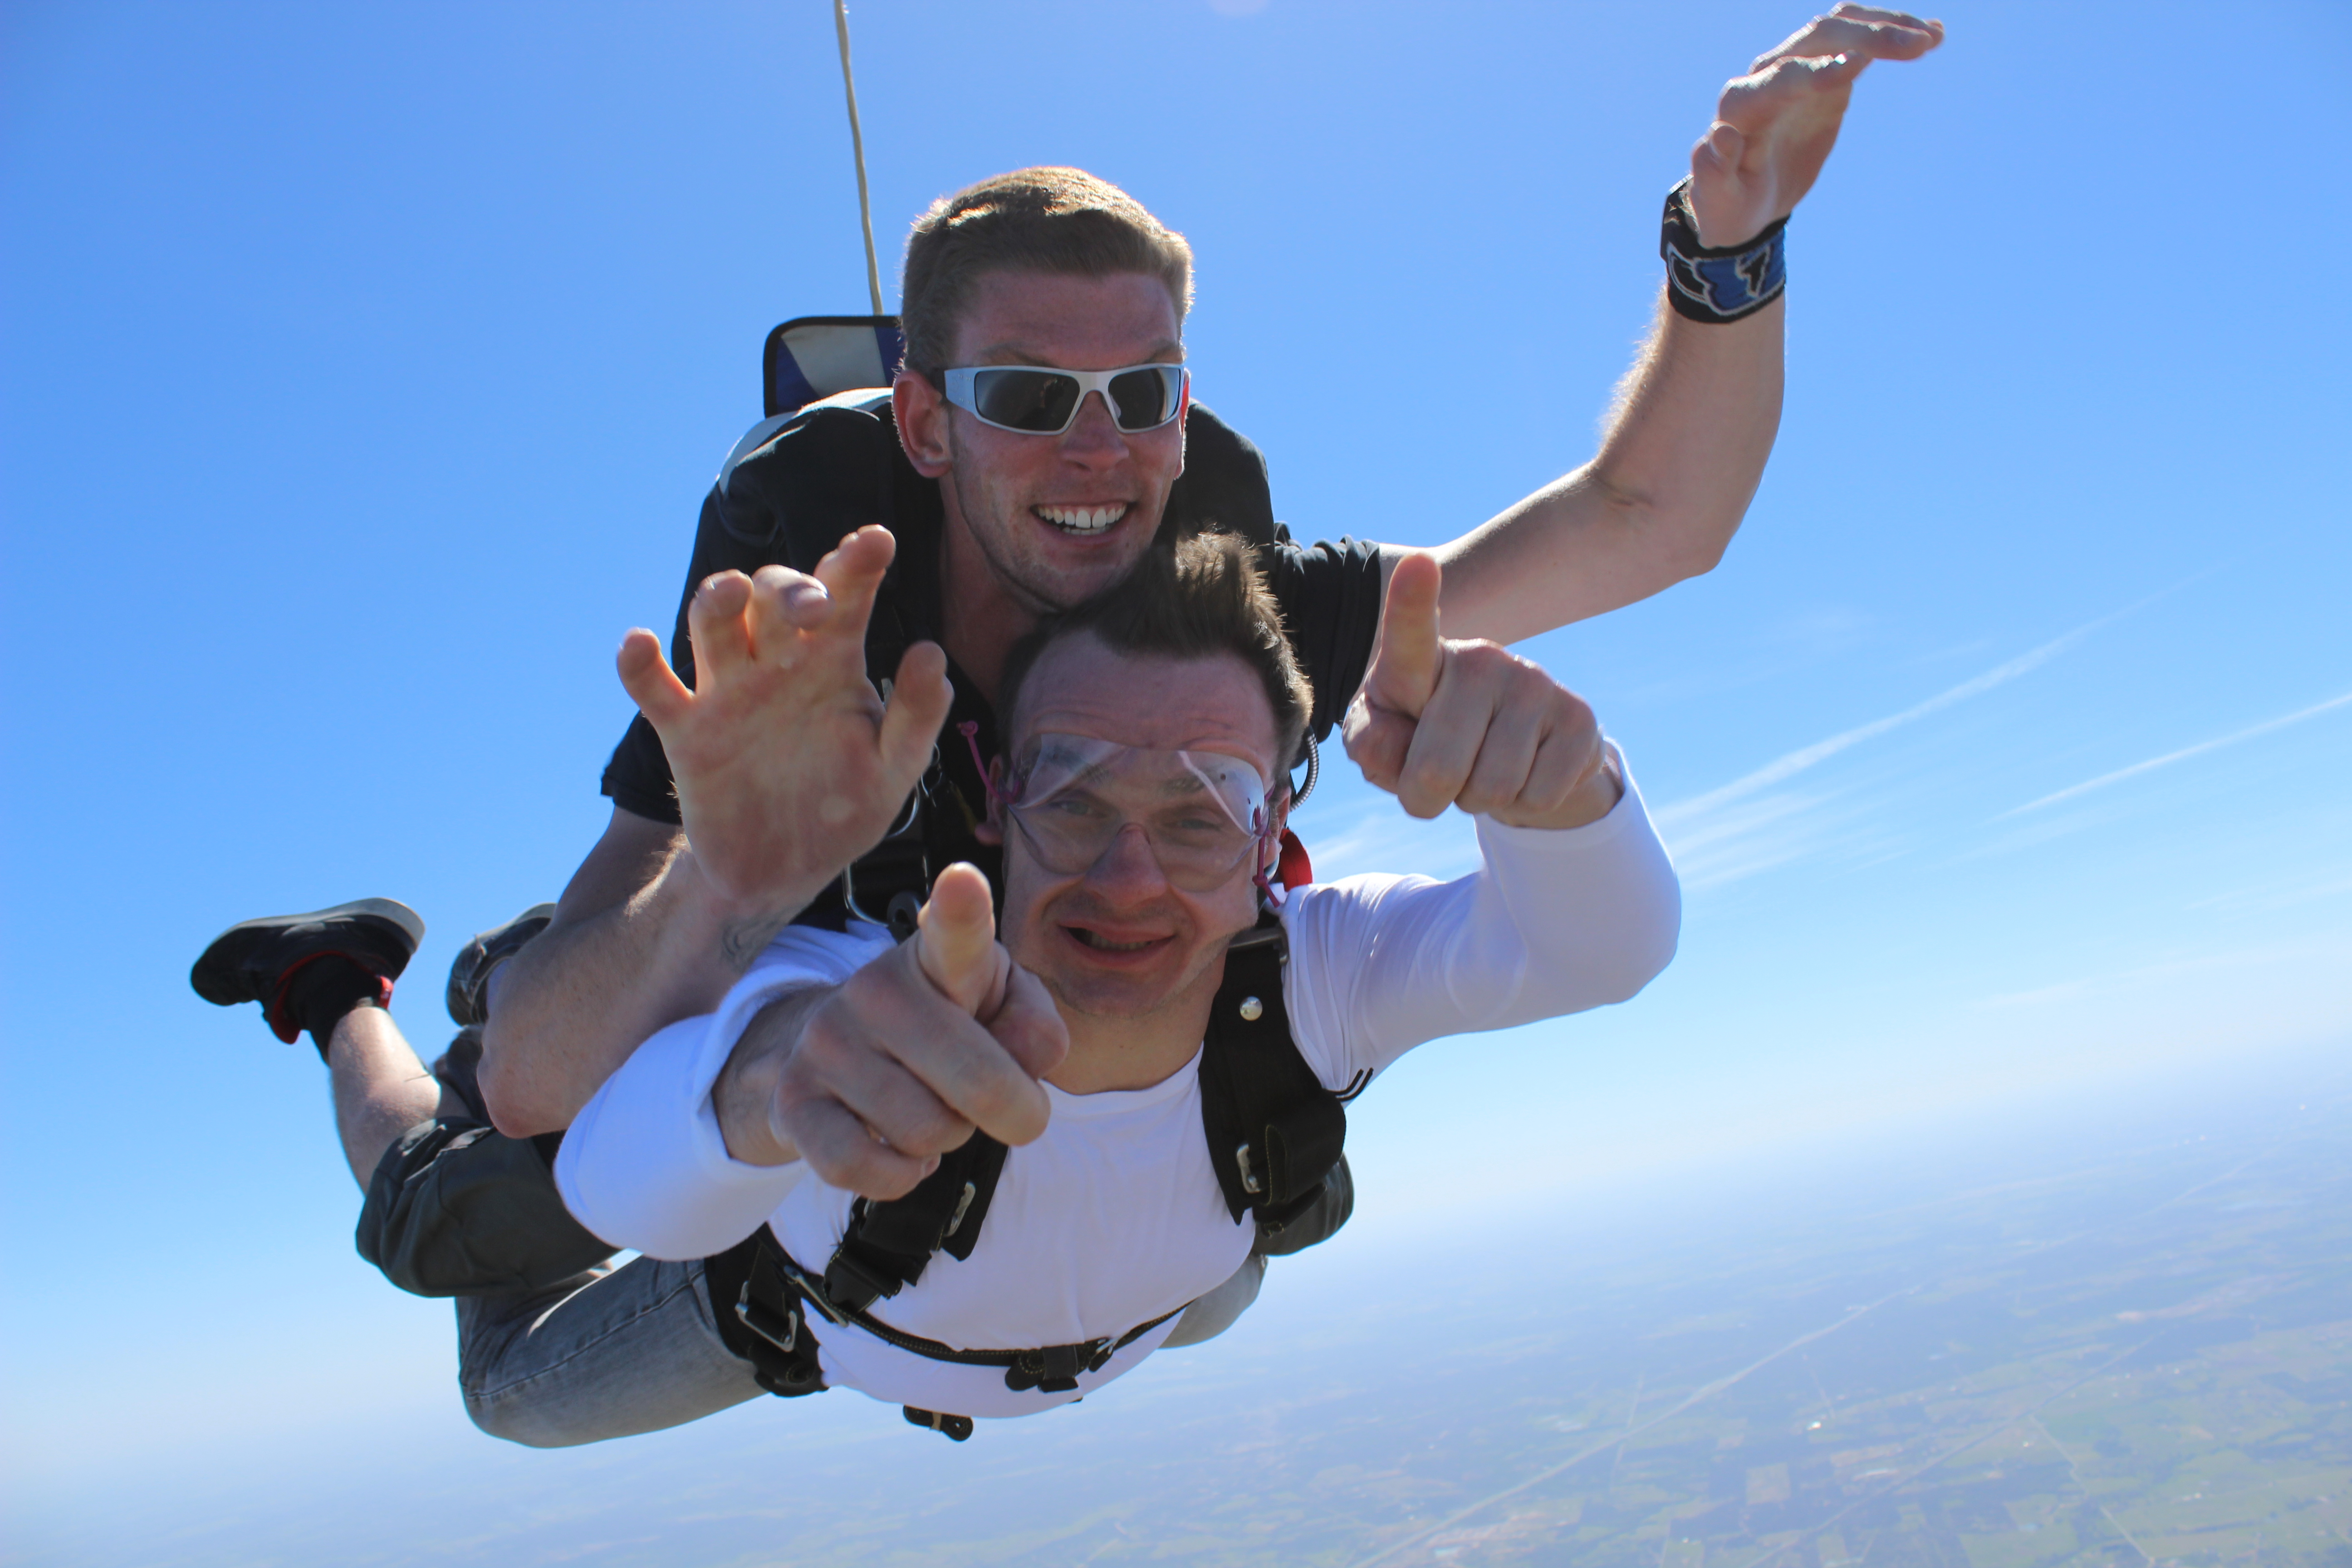 Miami skydiving center groupon : Target online shopping reviews